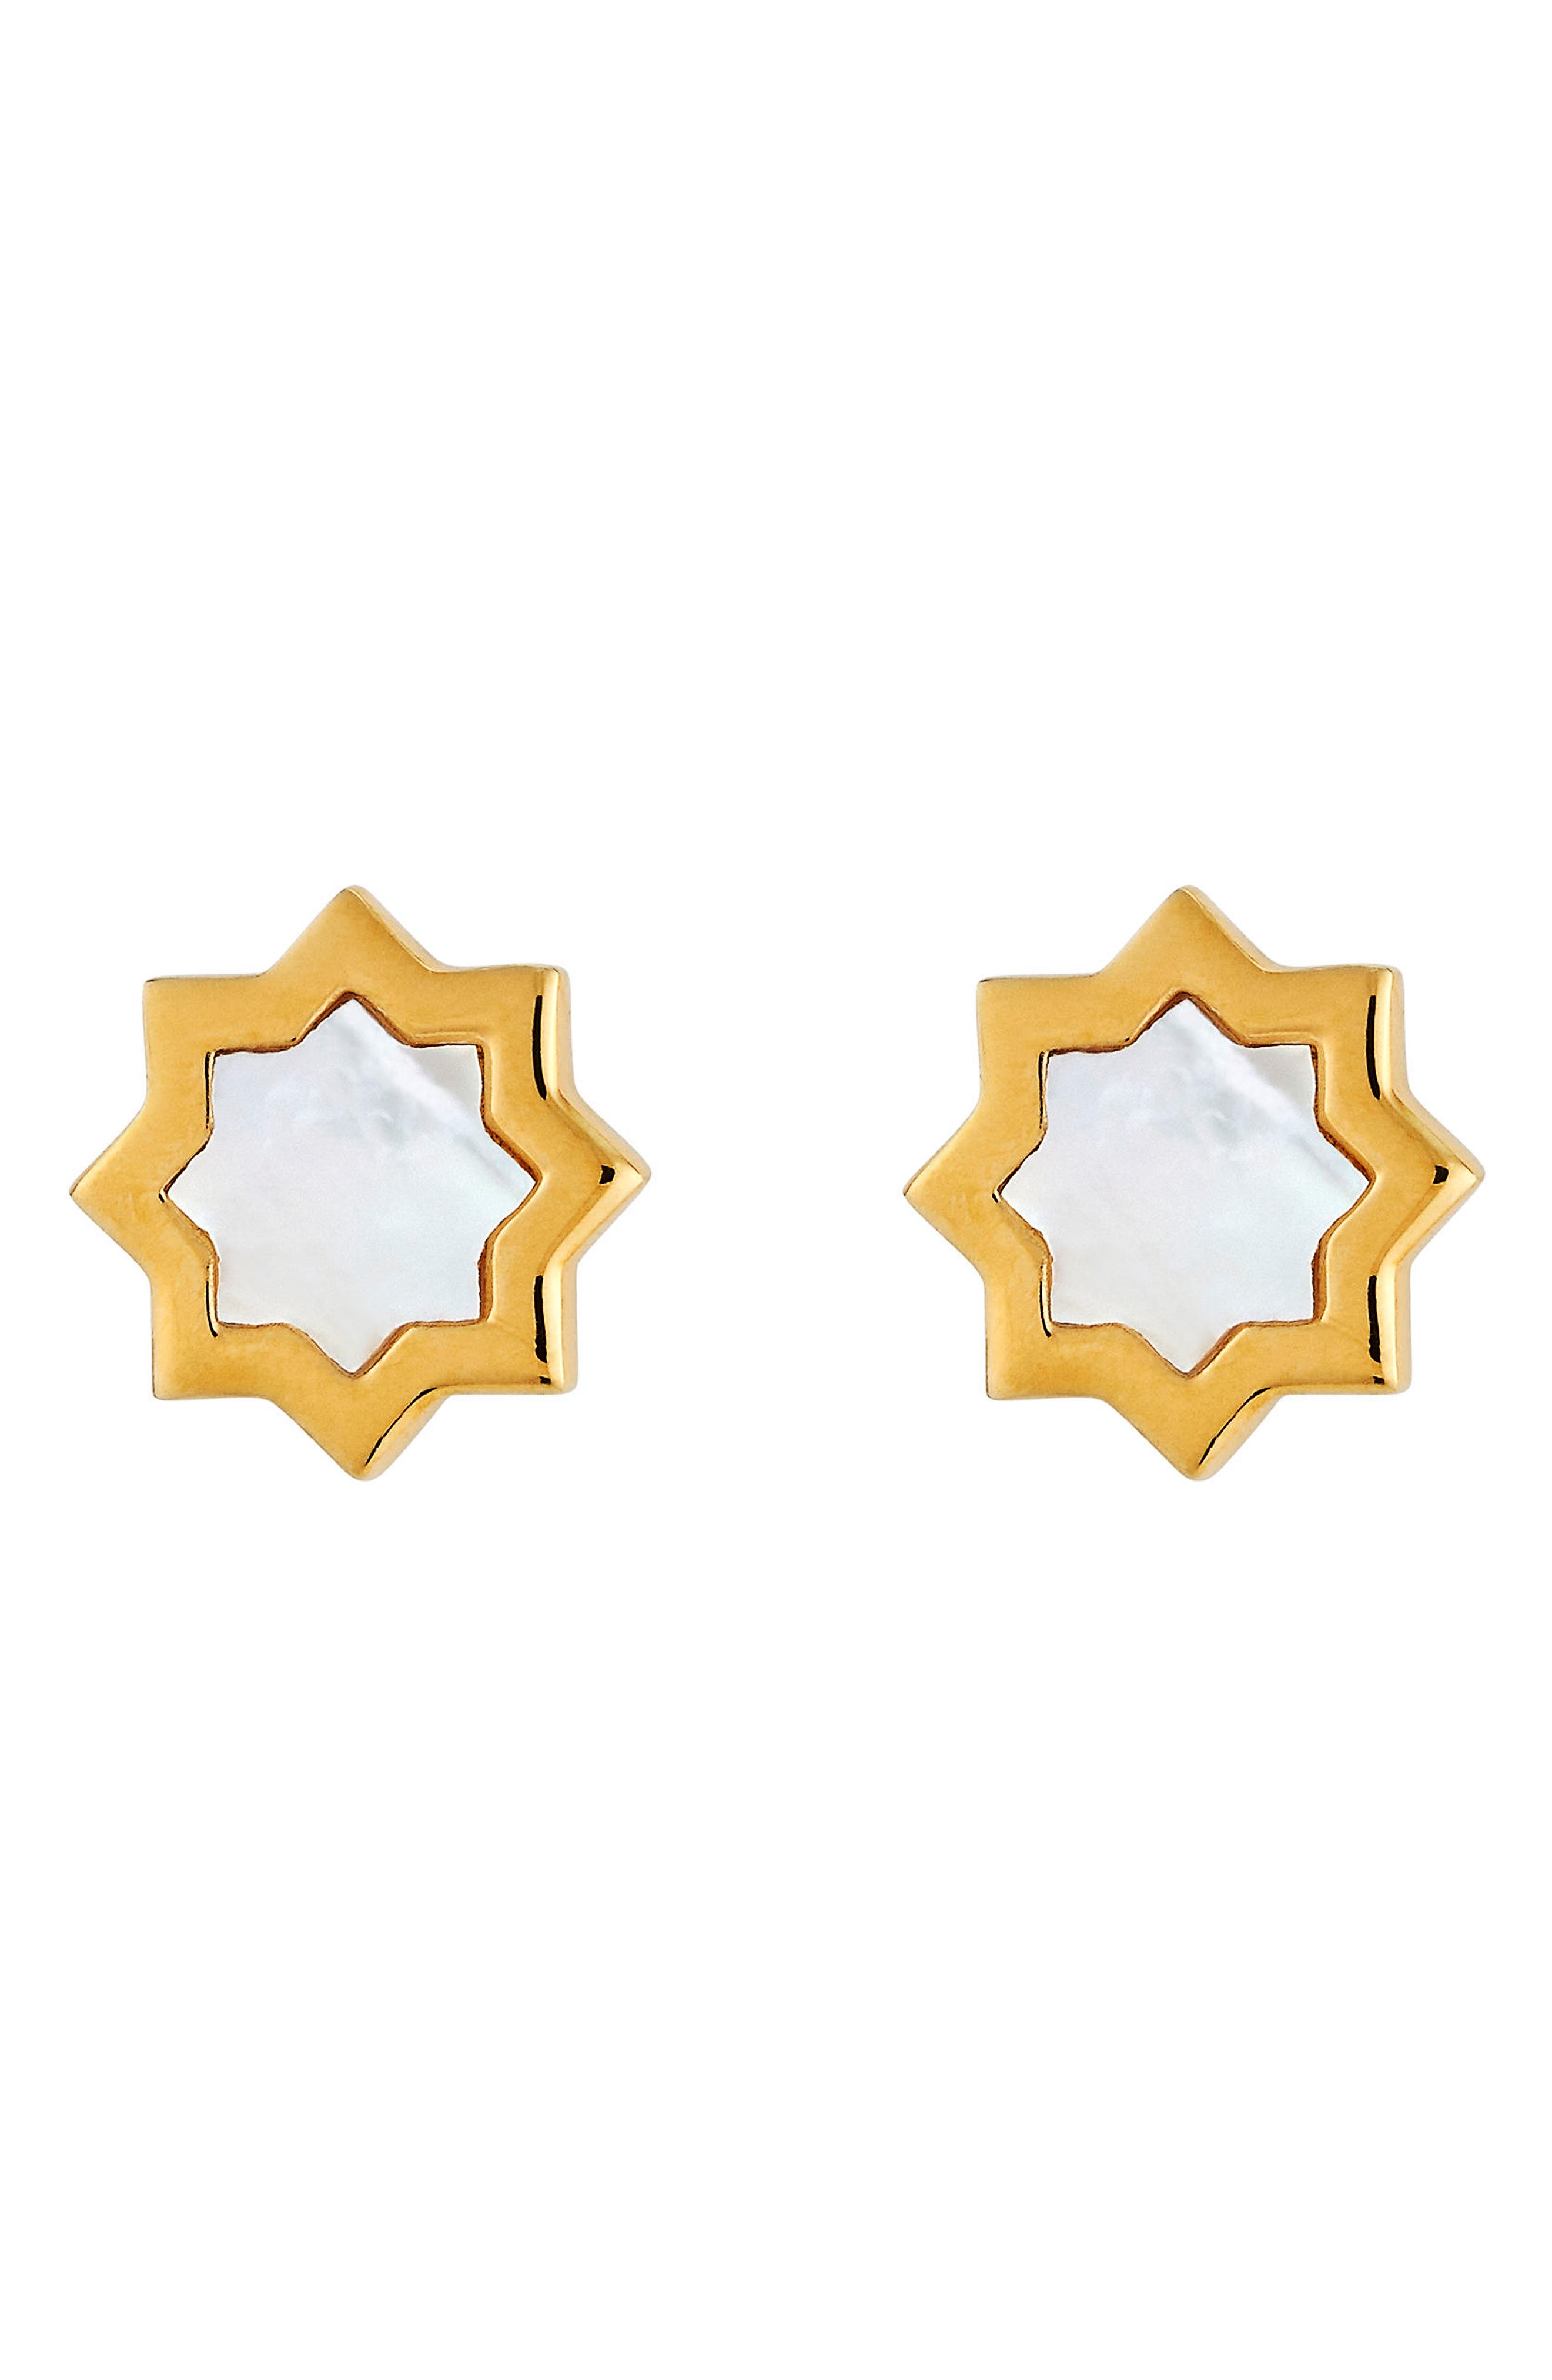 Kismet Mother-of-Pearl Stud Earrings,                             Main thumbnail 1, color,